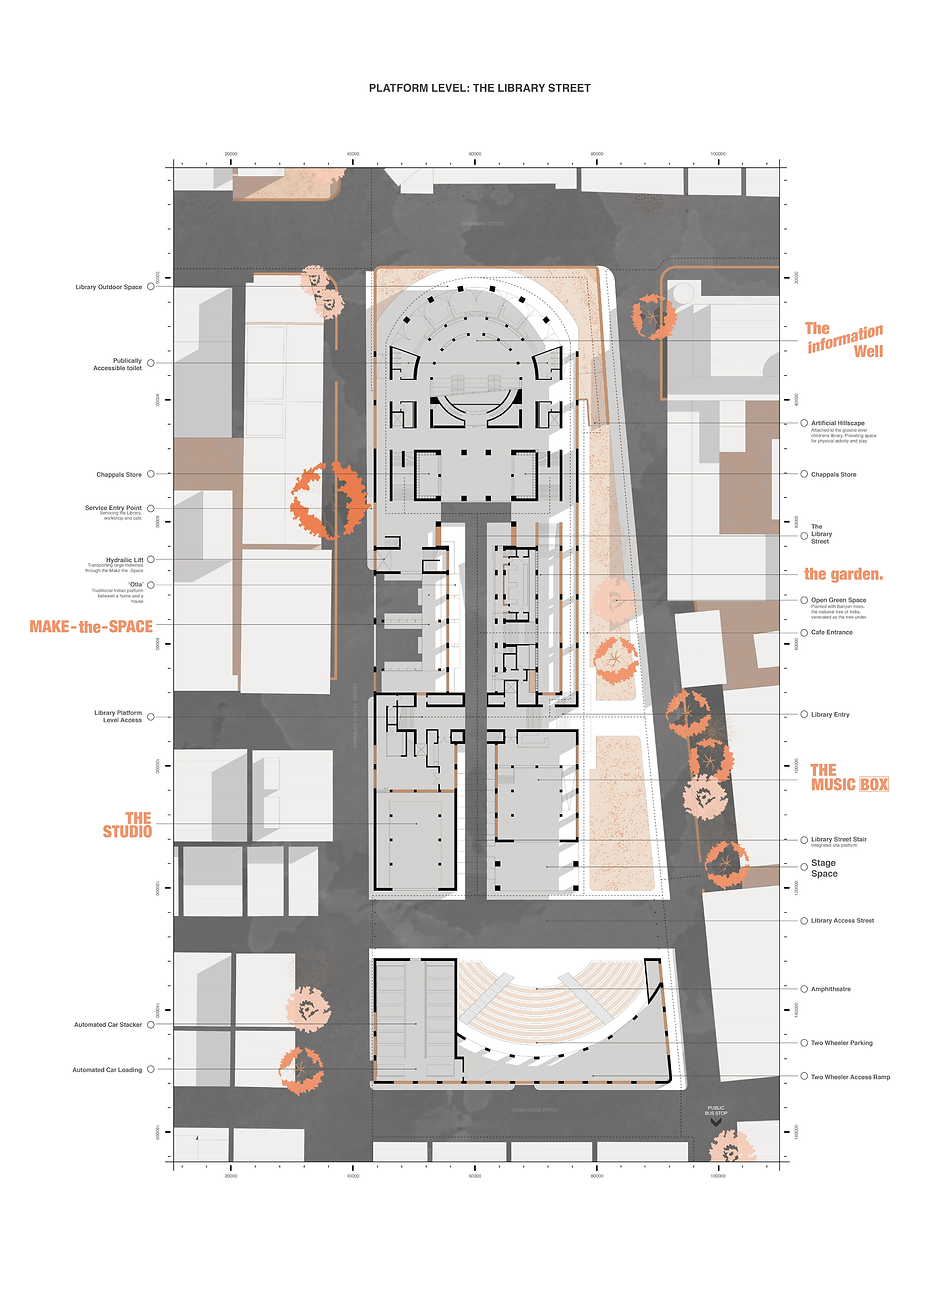 The Library Street (First Floor Plan)